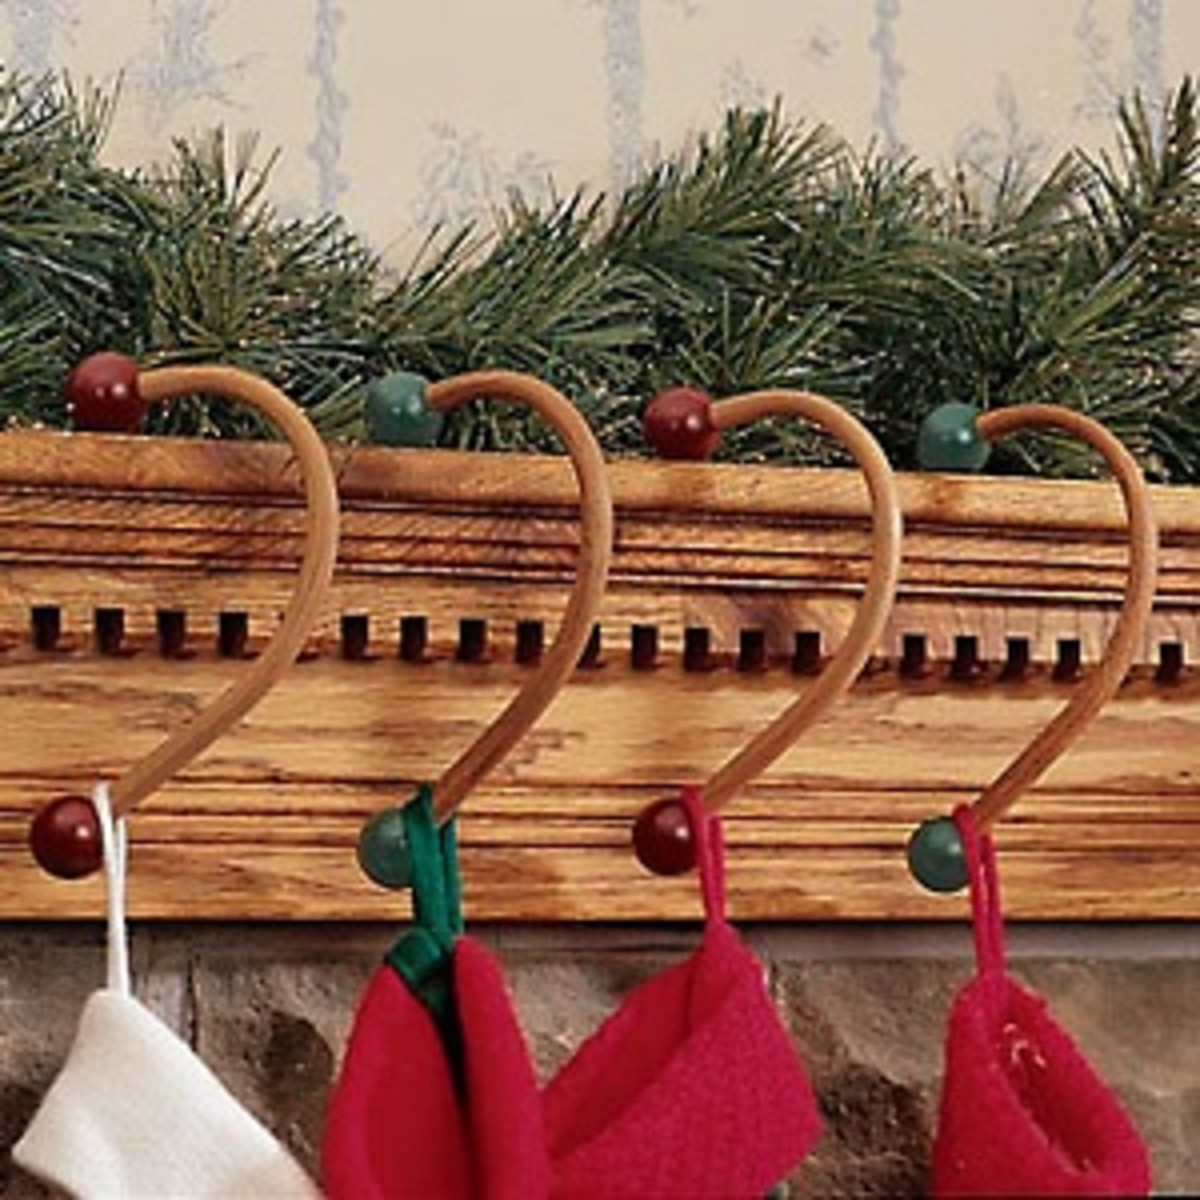 Christmas stocking hangers and holders